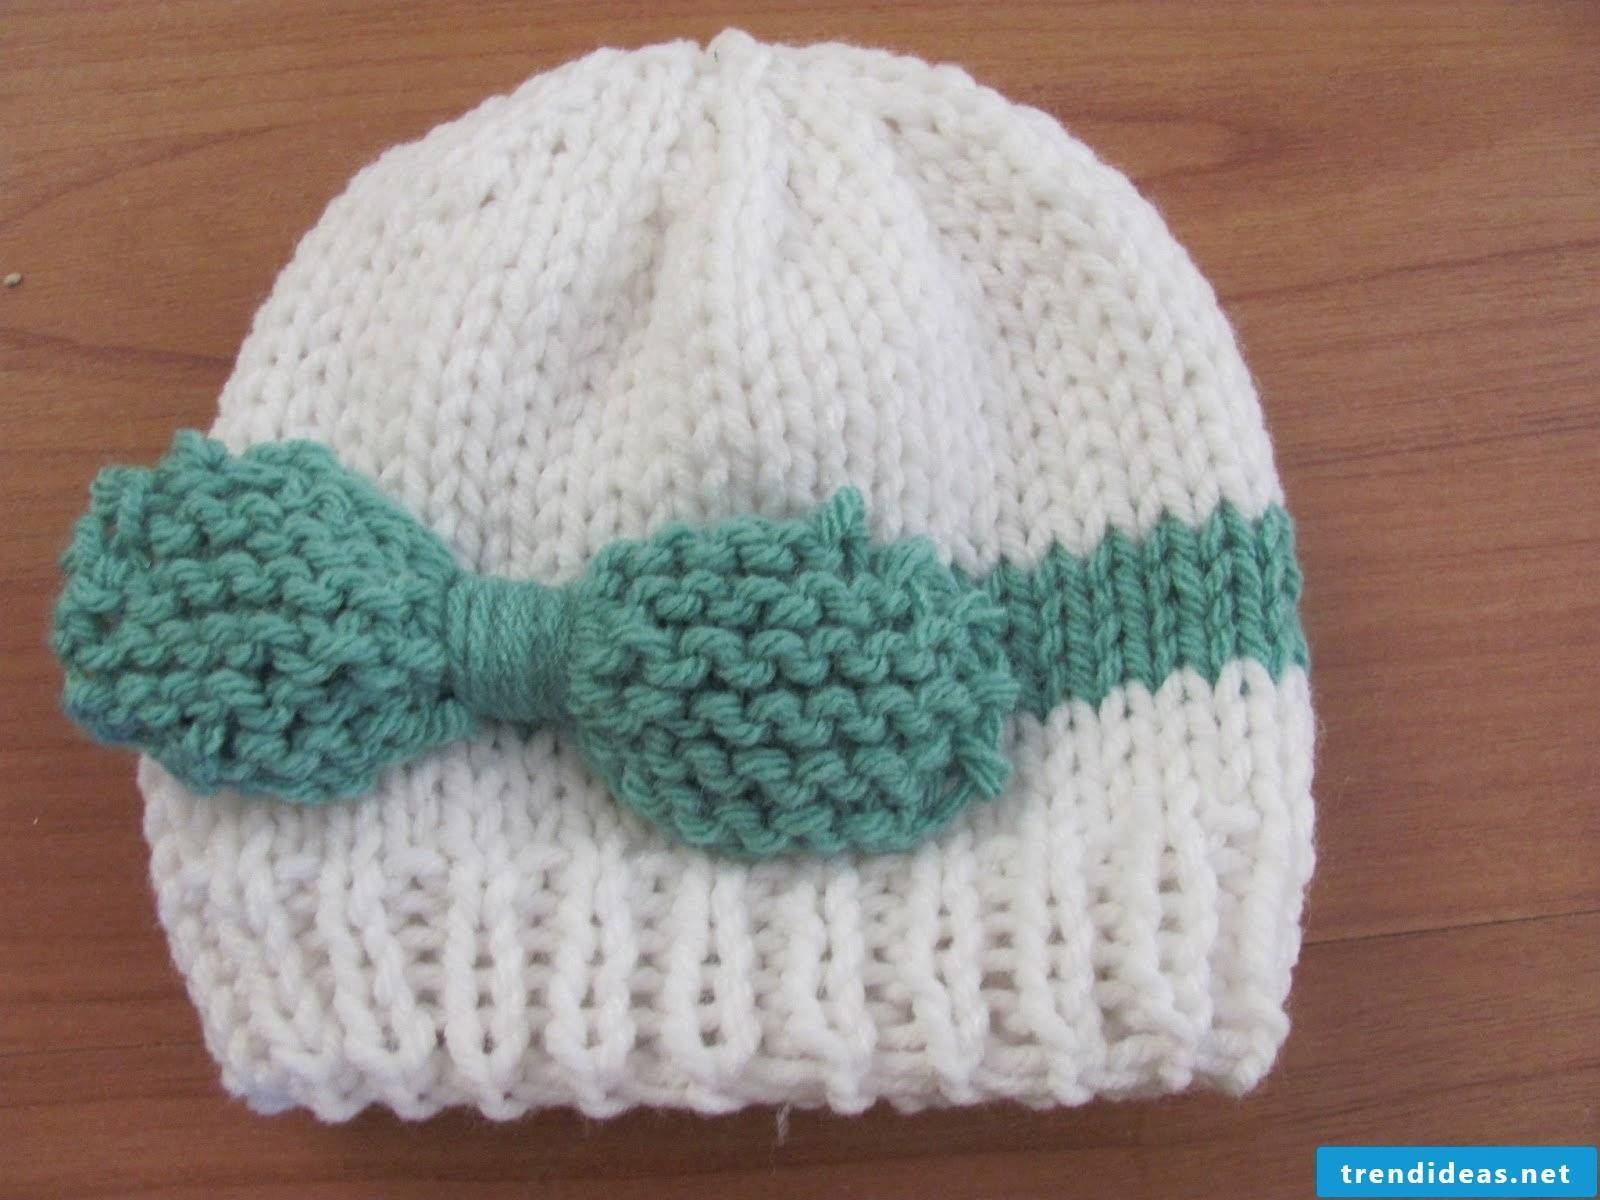 Knitting cap - instructions